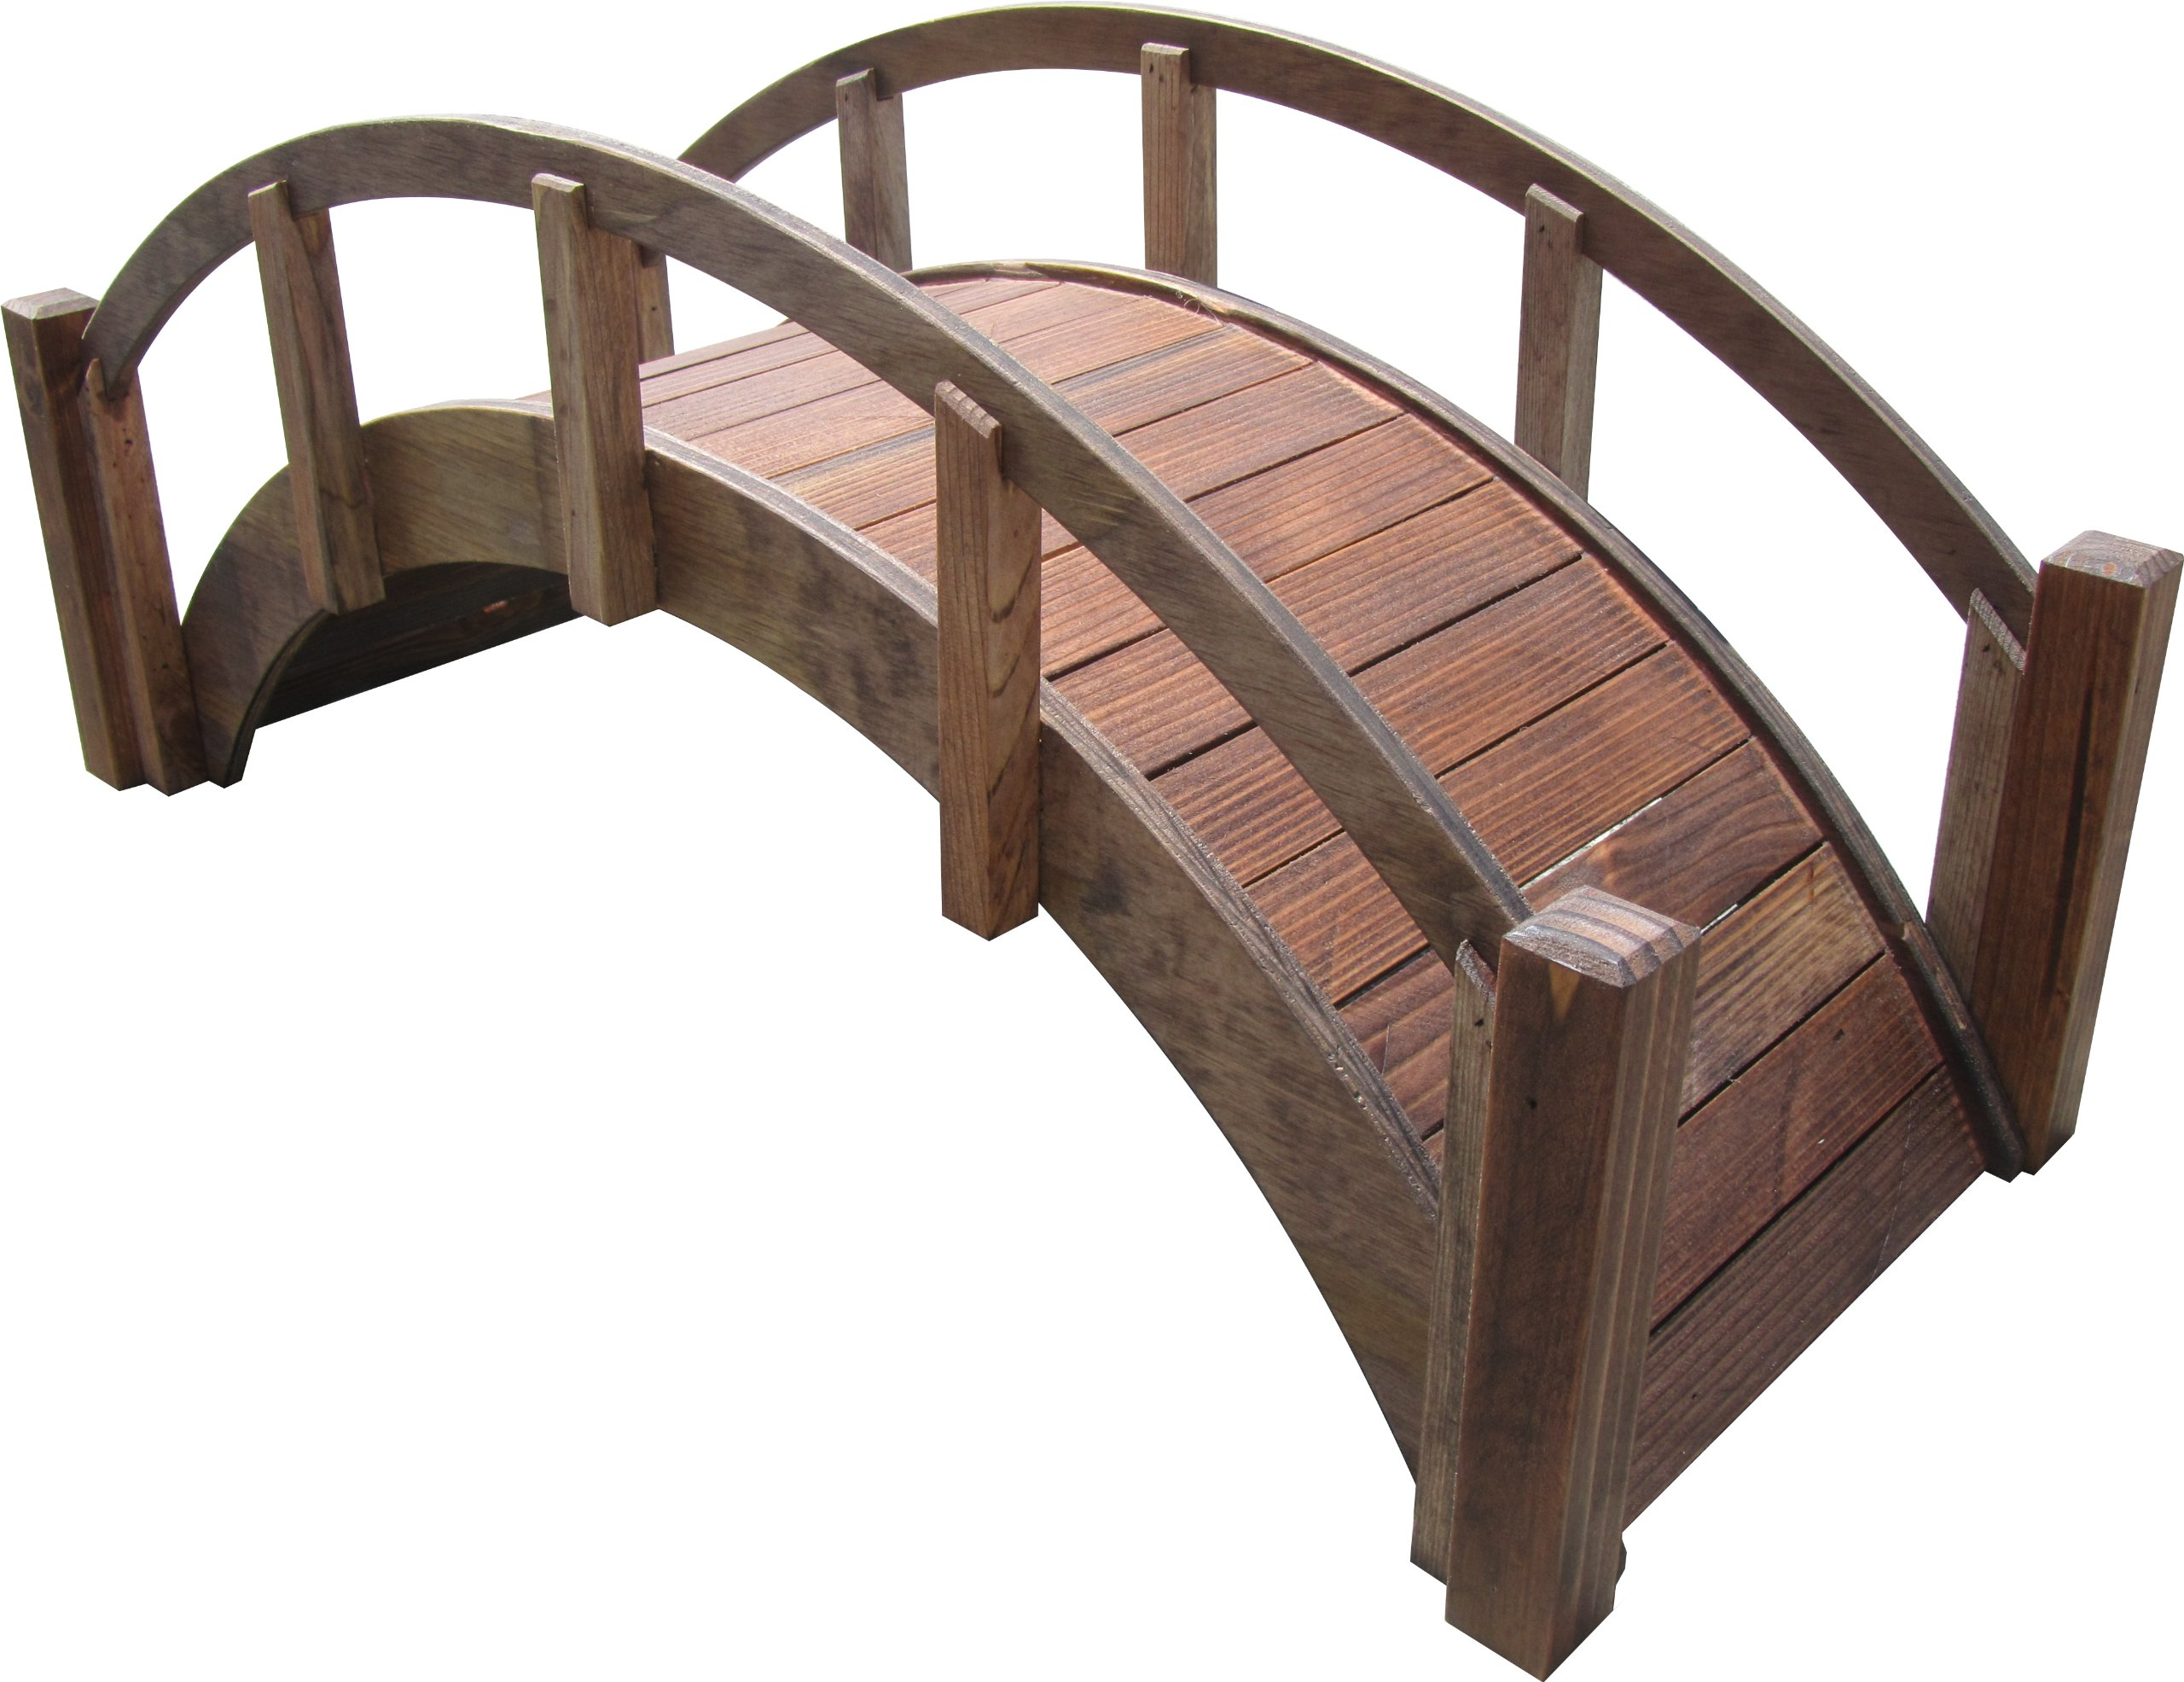 SamsGazebos Miniature Japanese Treated Wood Garden Bridge, 29-Inch, Brown by SamsGazebosTM